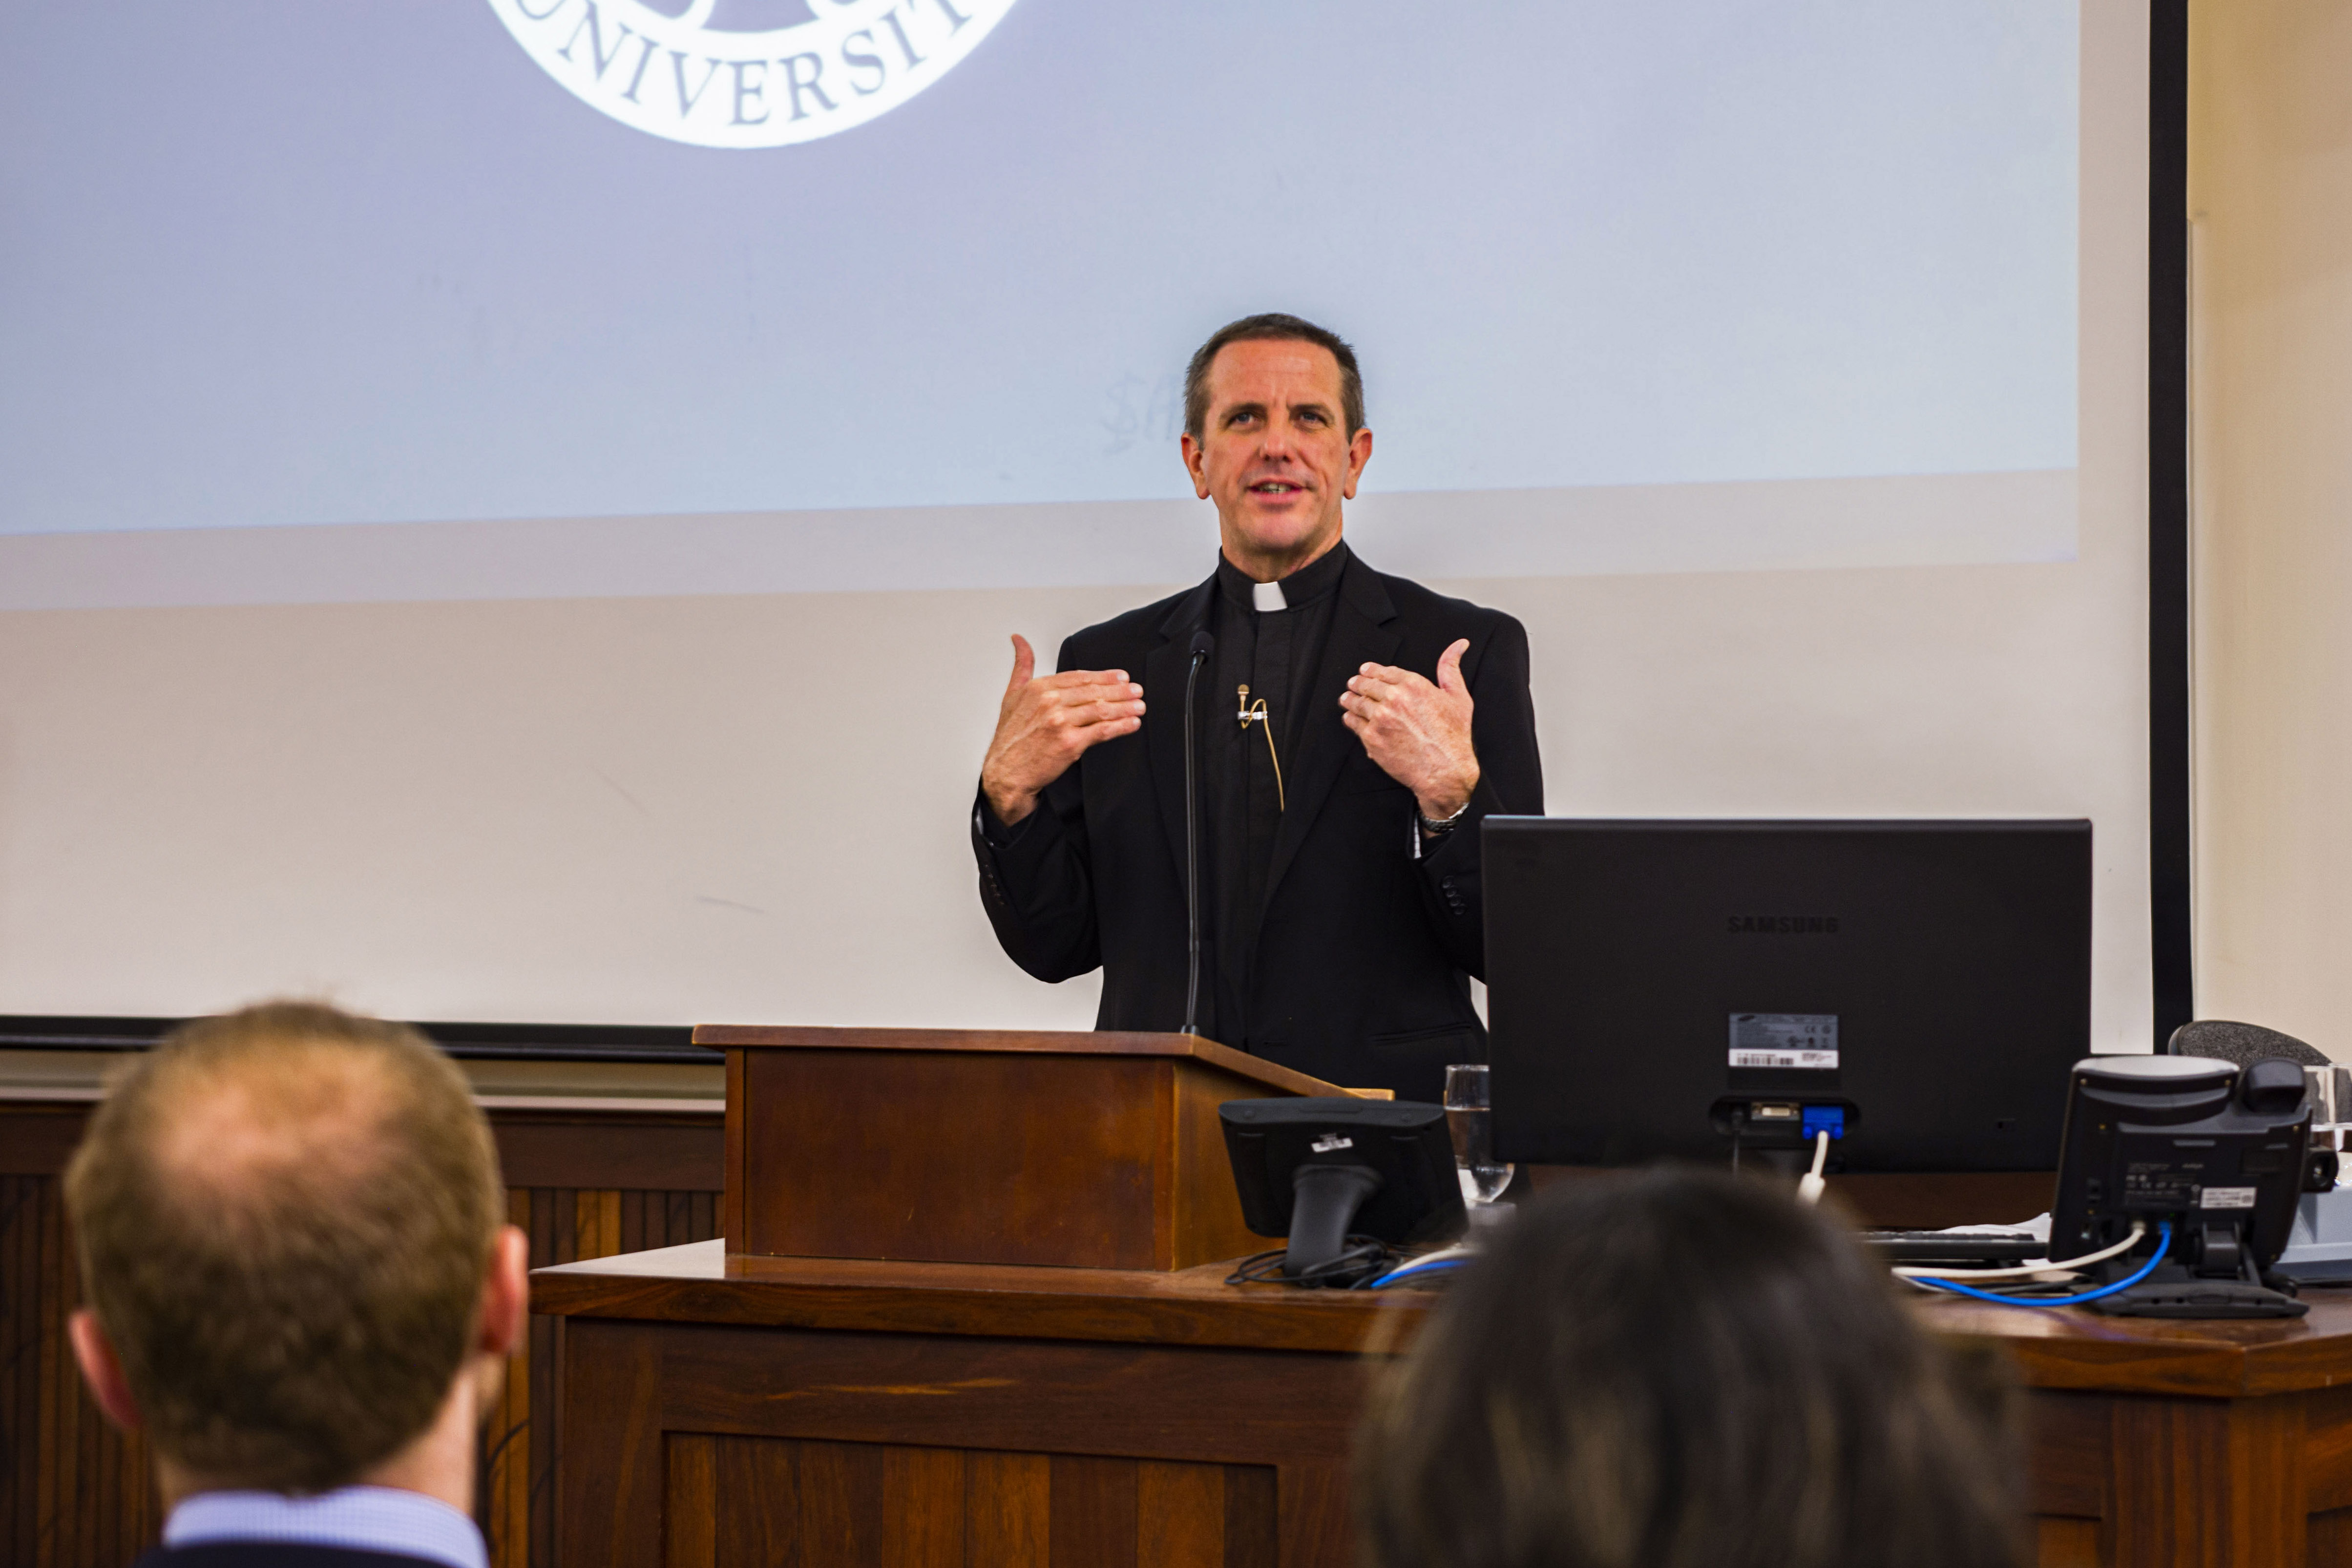 Fr Chris Collins SJ, an US expert in Jesuit spirituality, speaks at the public lecture on Three Moments of the Day: Praying with the Heart of Jesus, at the University of Notre Dame Australia, Fremantle, Thursday 25 July, 2019. Photo: Eric Martin.